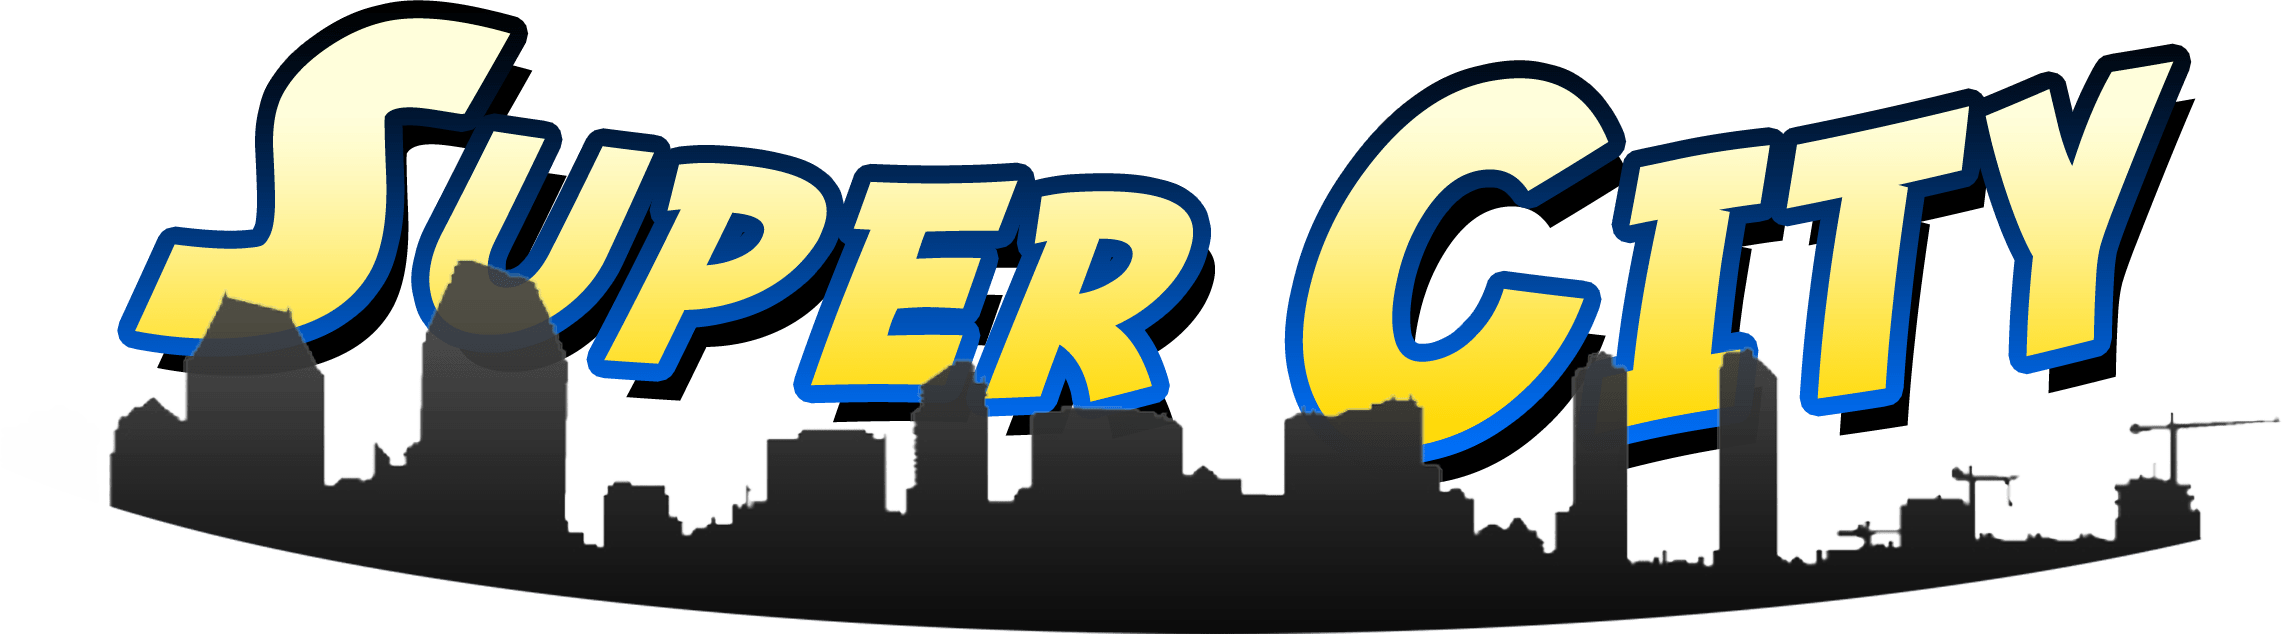 how to create a new resume sample customer service resume how to create a new resume the resume builder city is a superhero management game for